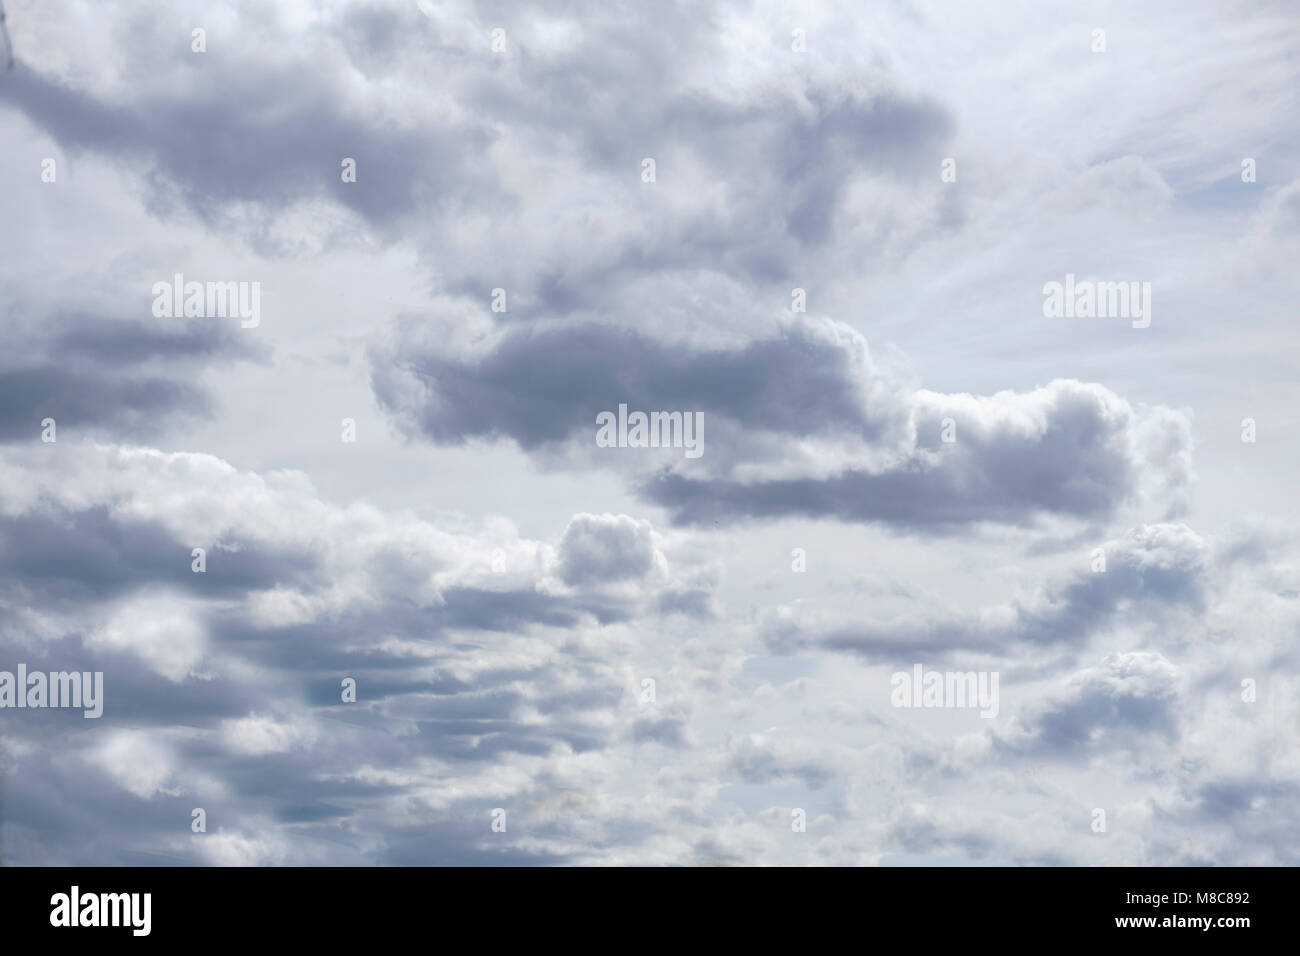 the clouds part in the sky - Stock Image